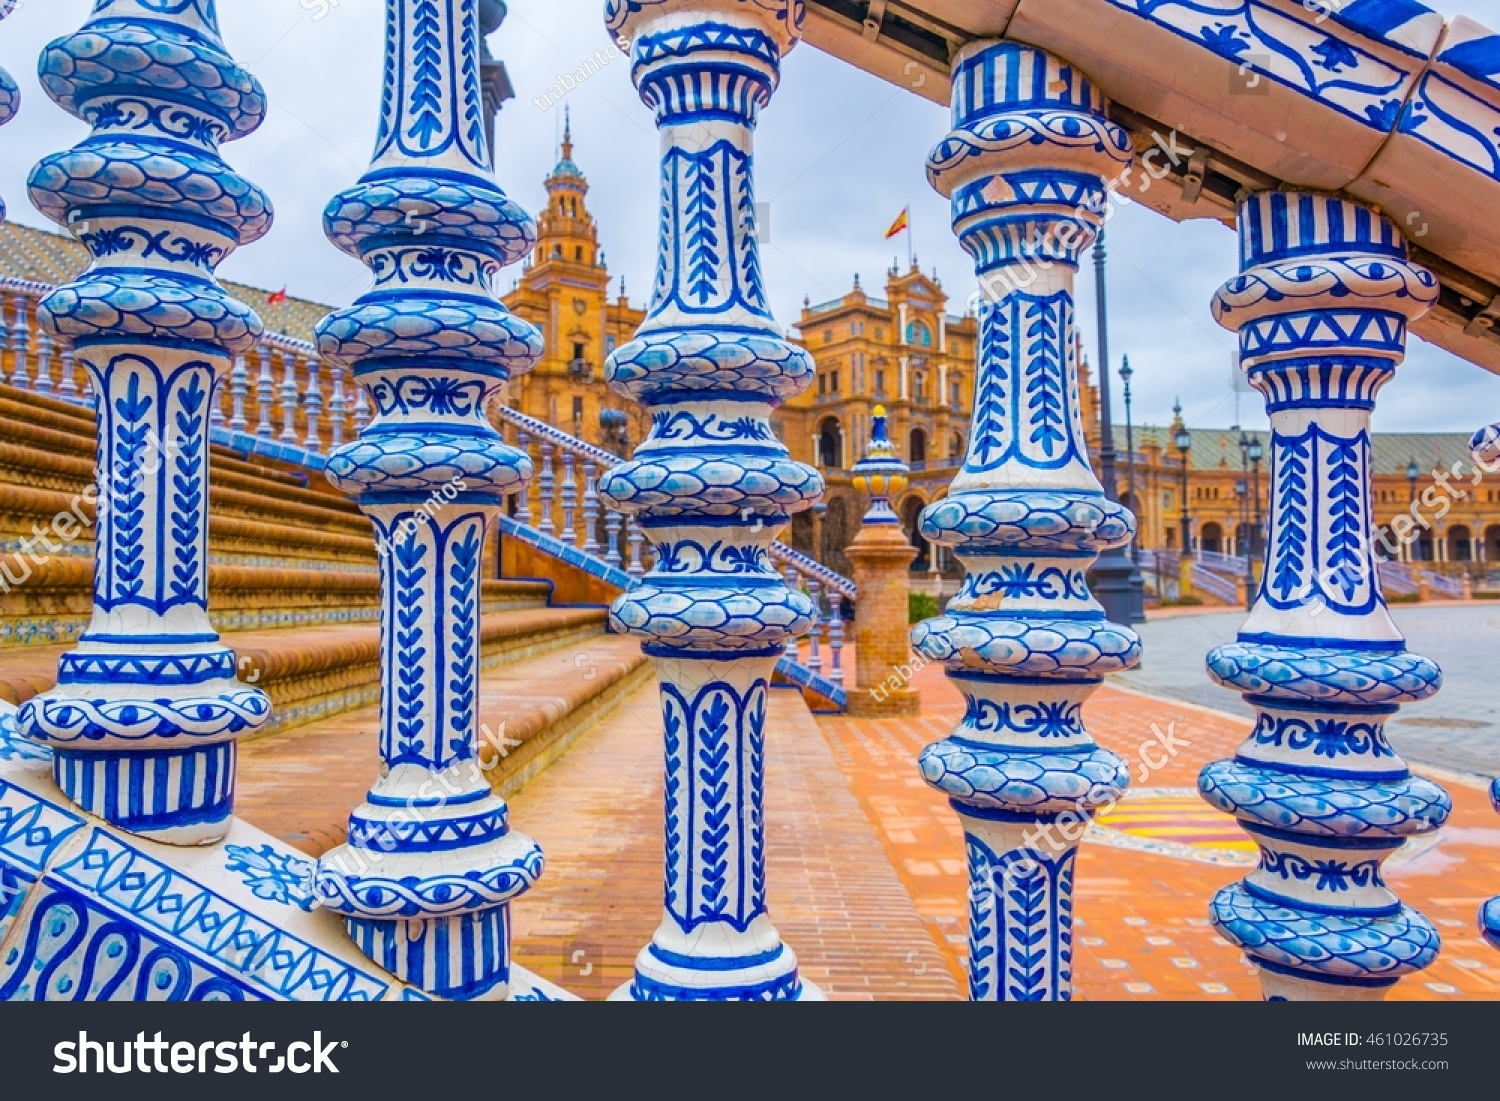 Azulejos Sevilla View Beautiful Railing Made Azulejos Tiles Stock Photo Edit Now